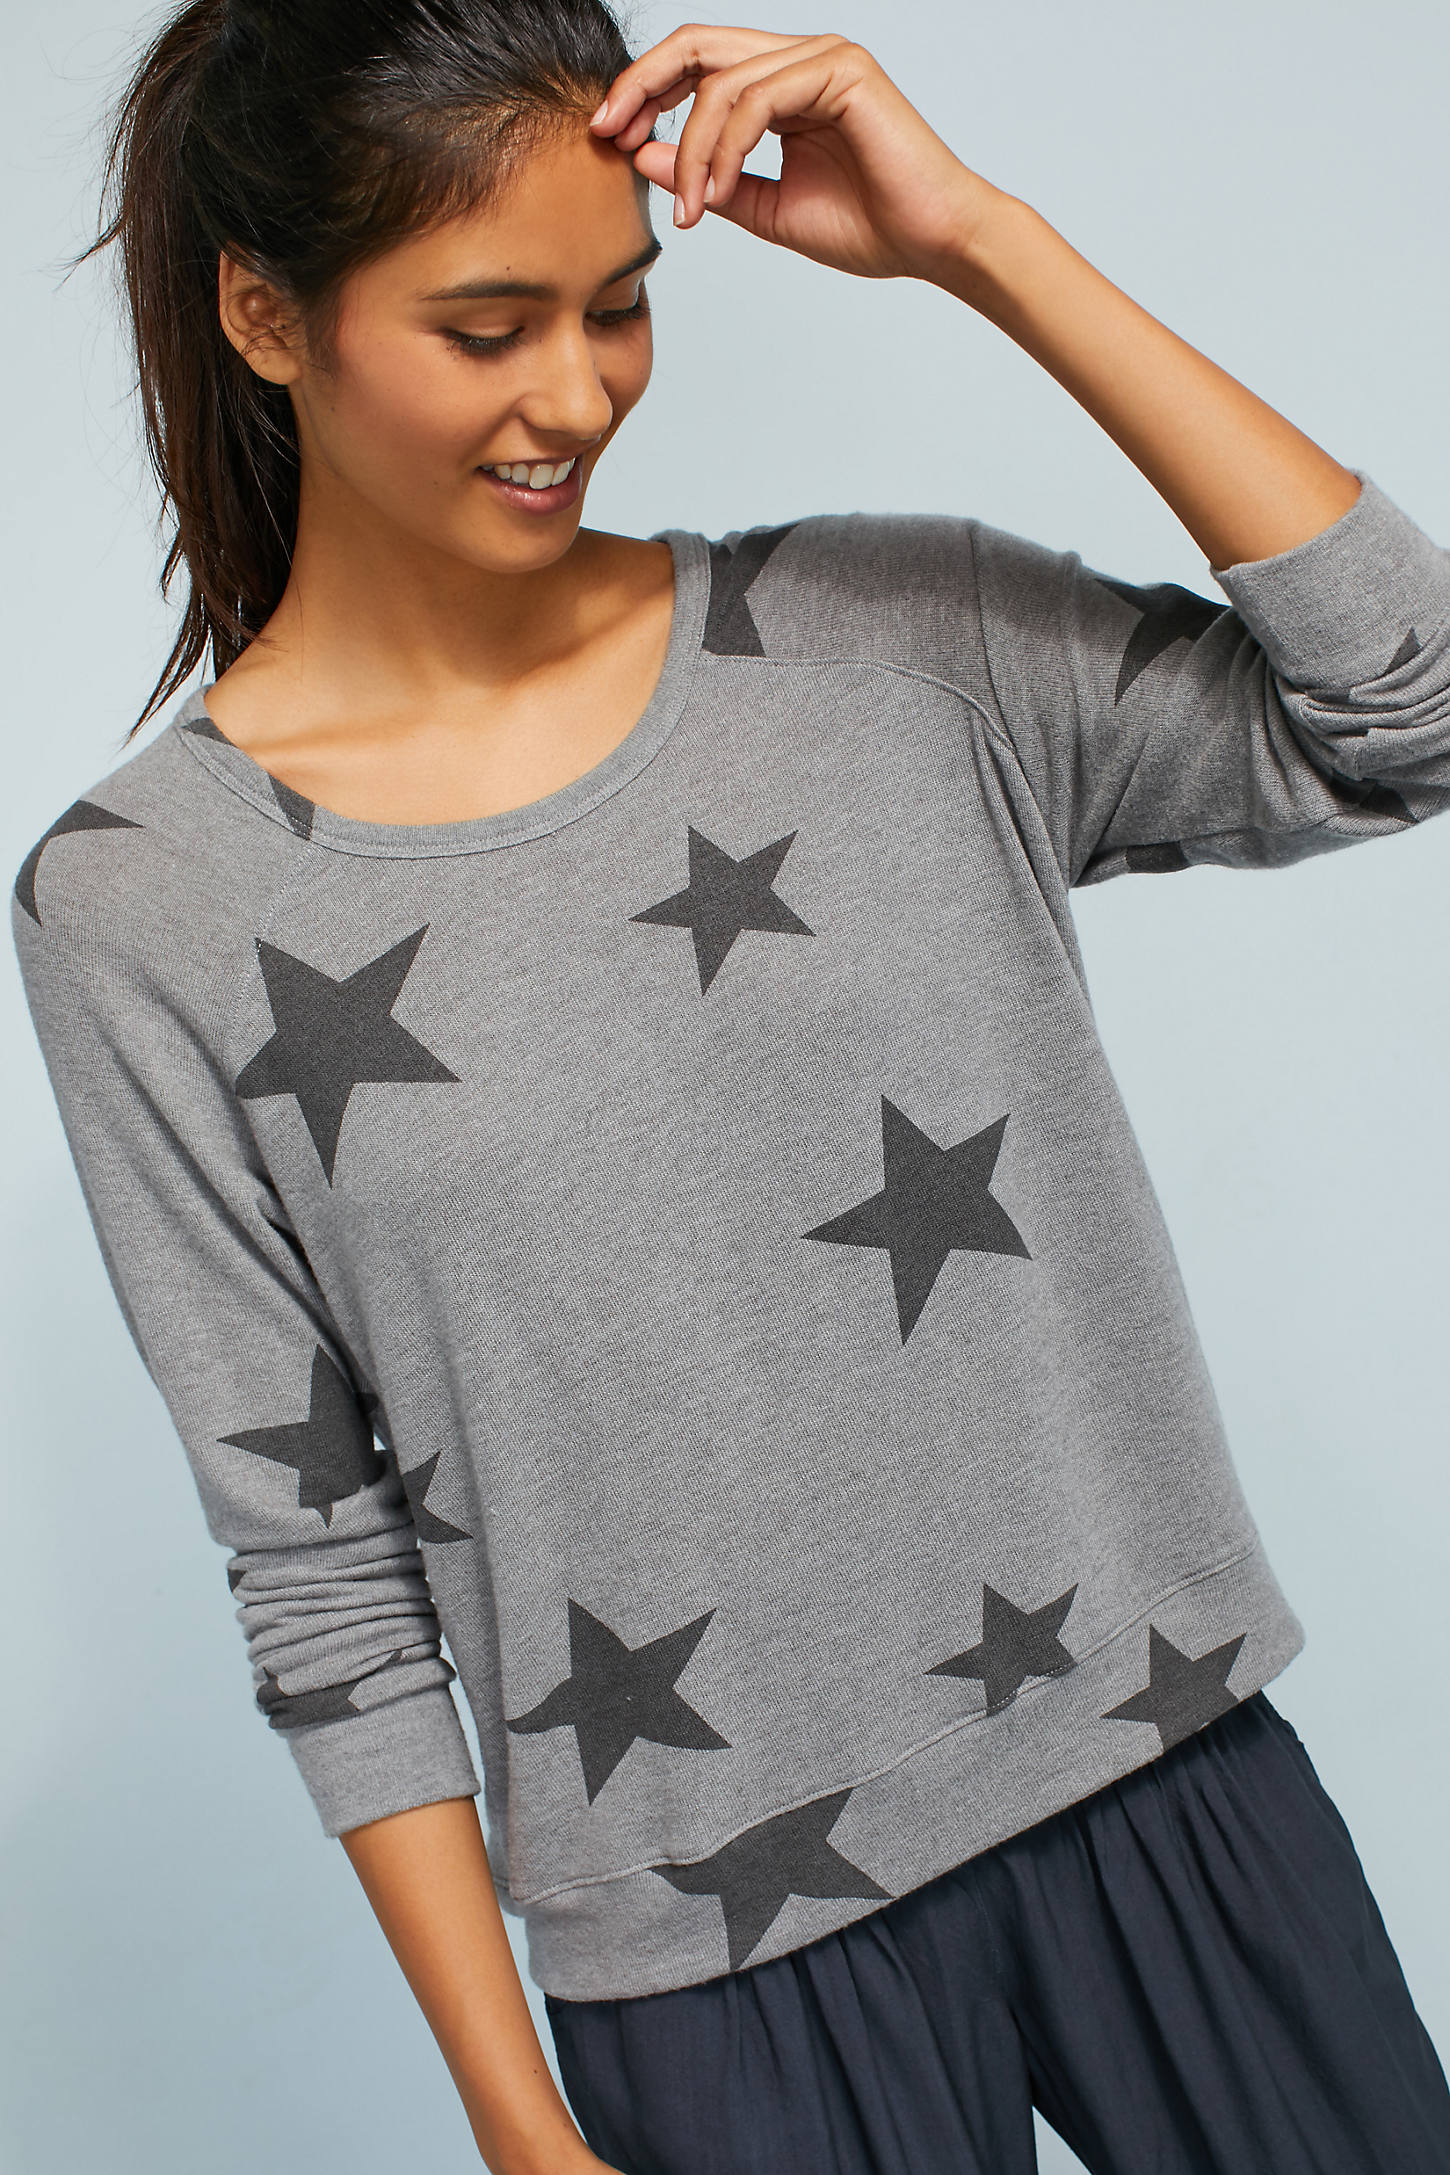 Starry Pullover